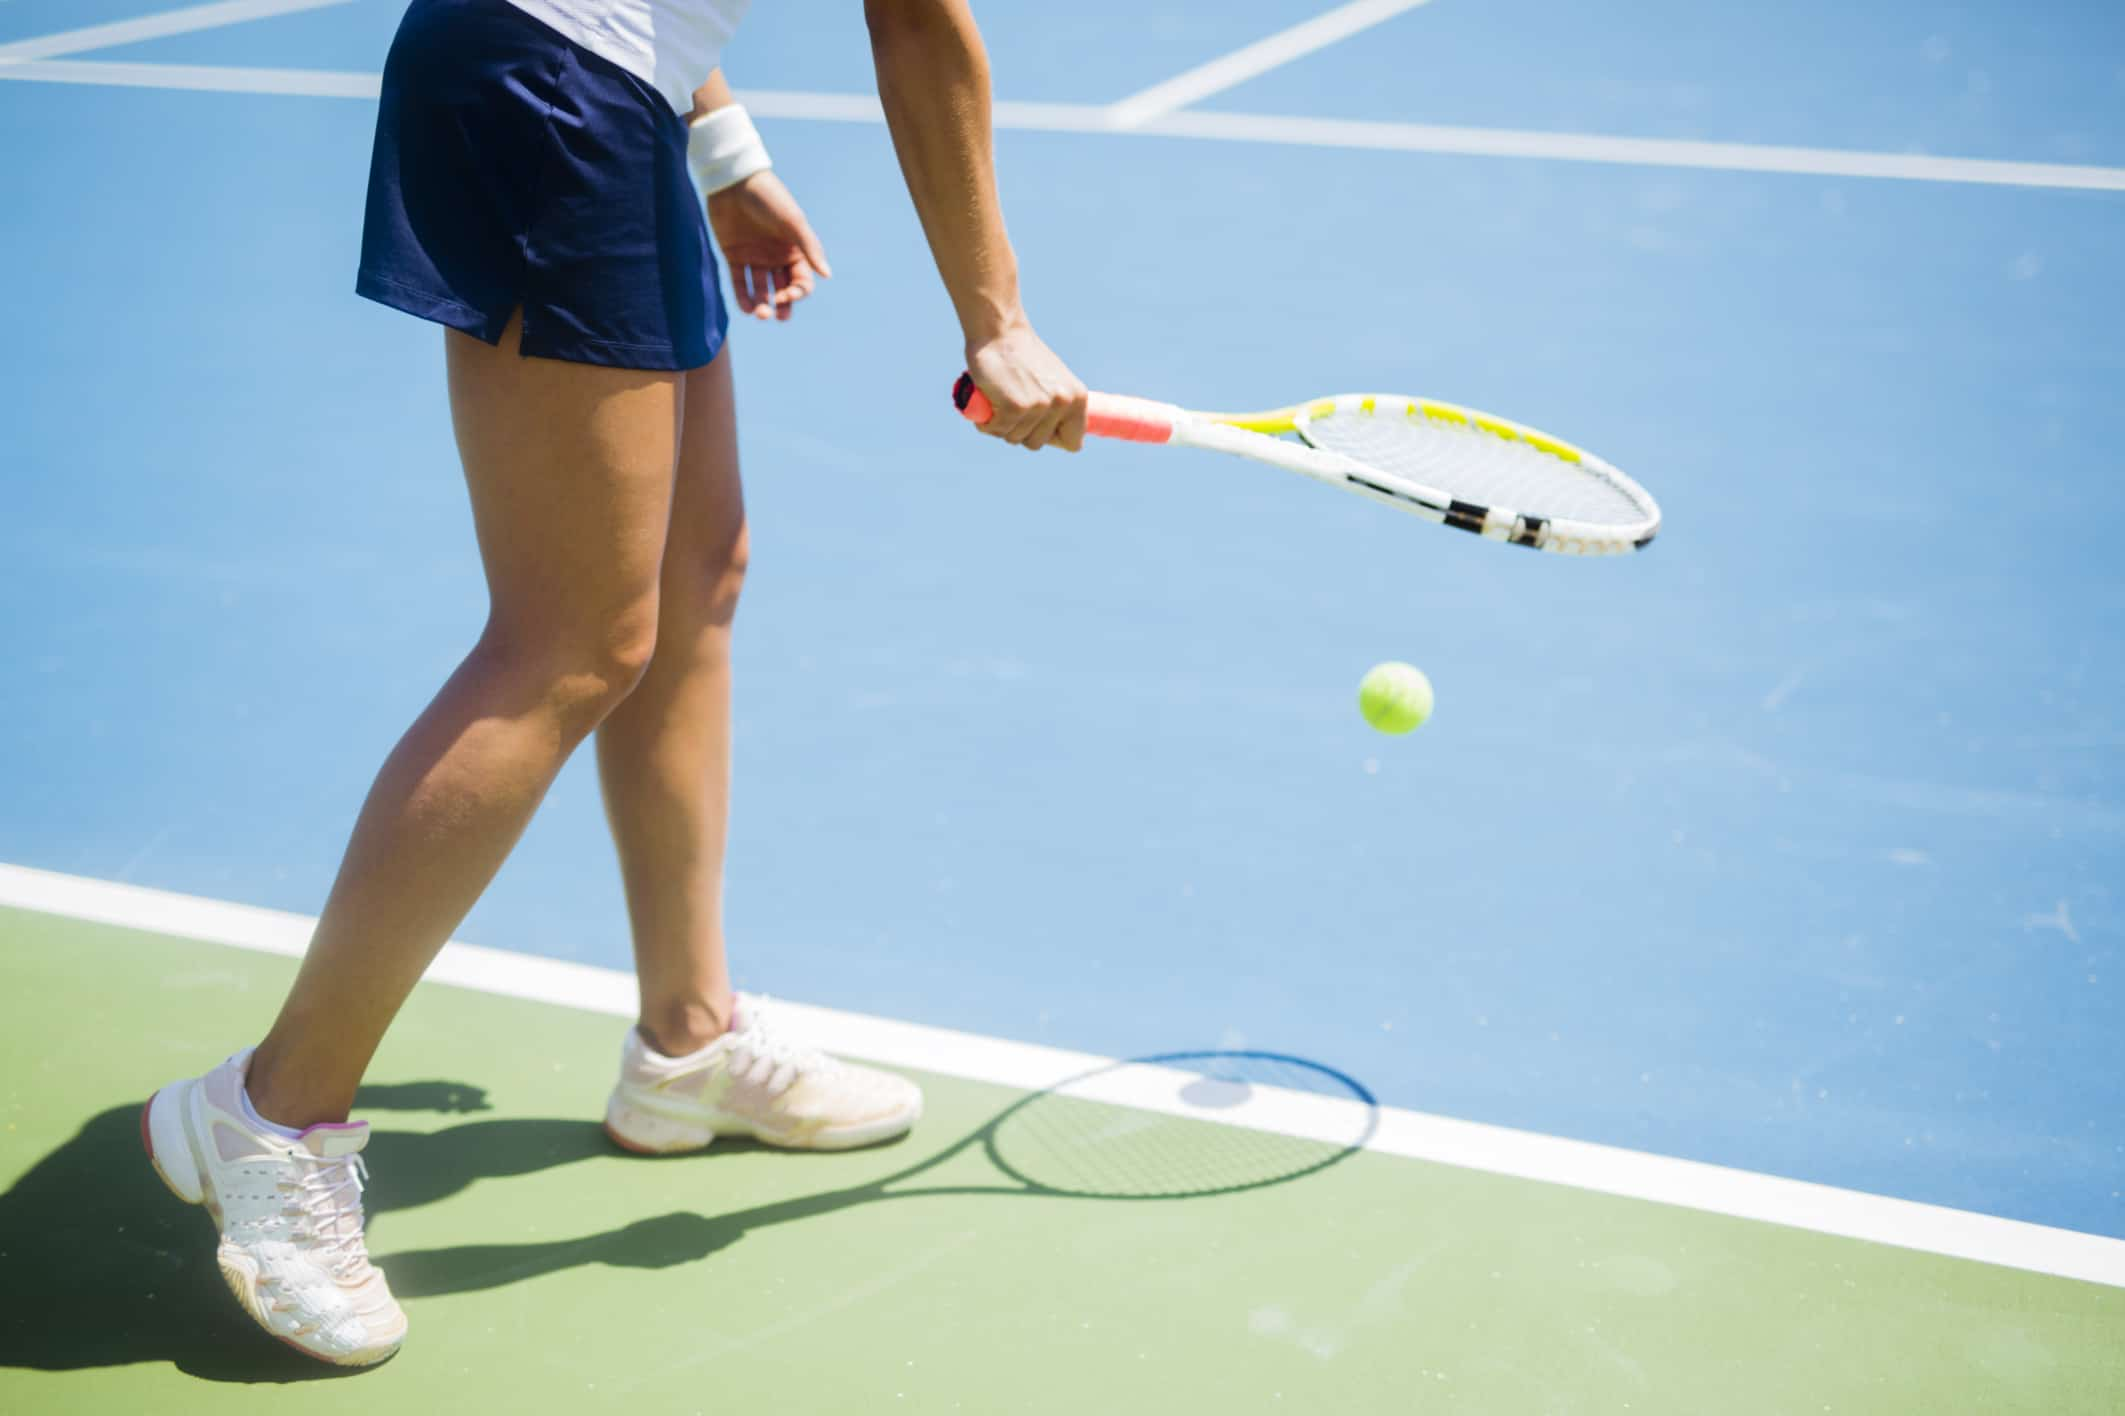 Why do tennis players bounce the ball before they serve